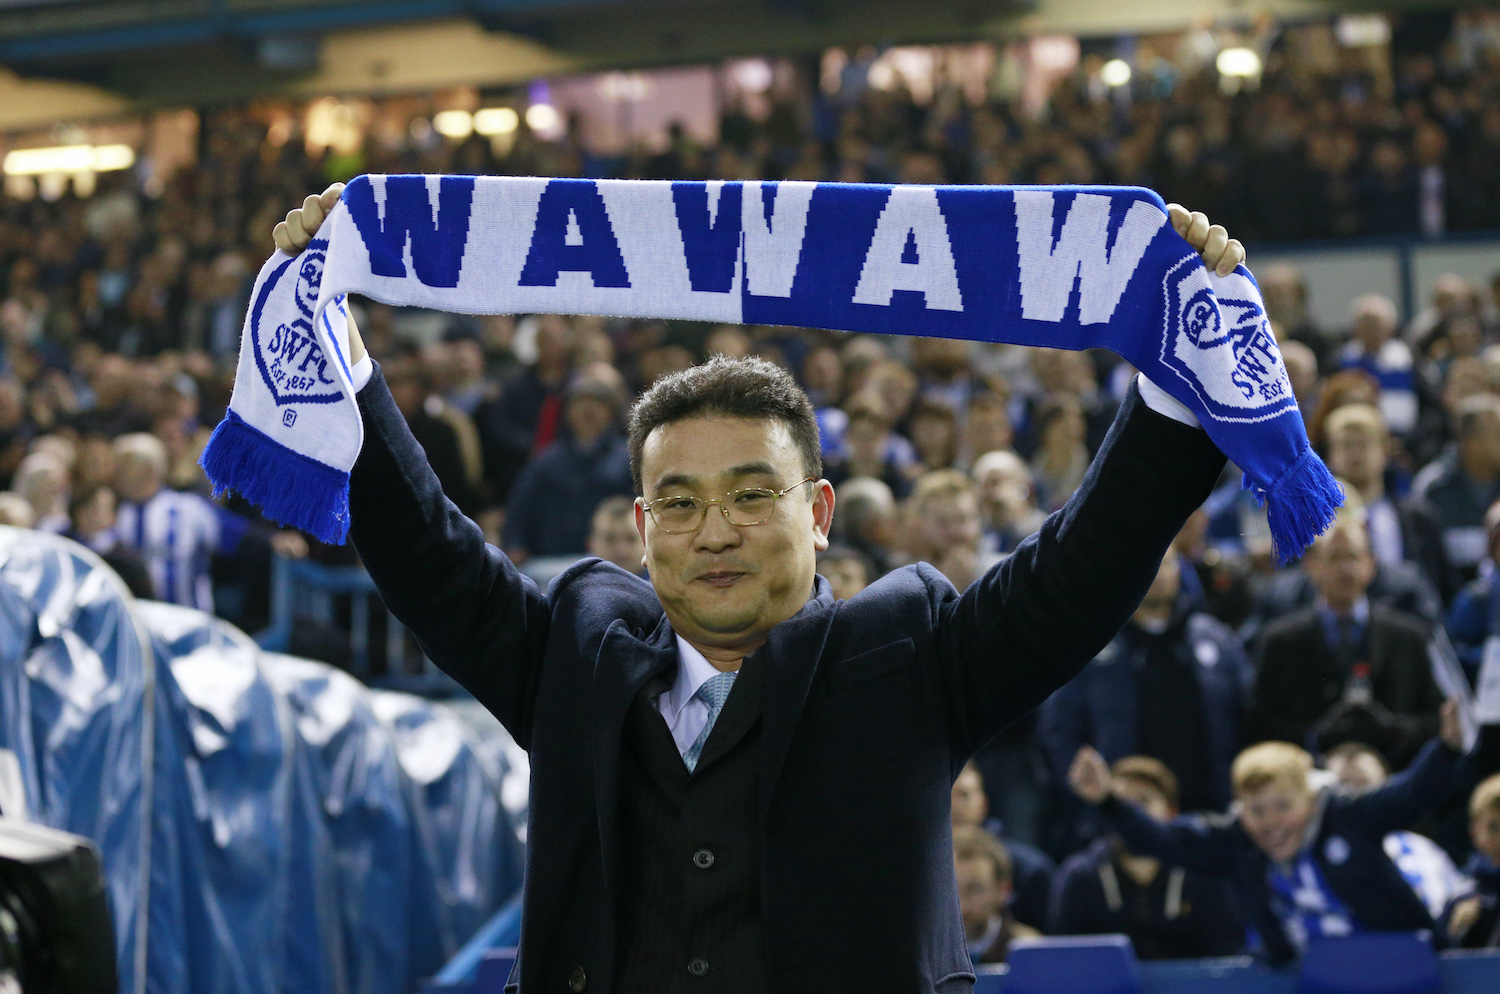 Sheffield Wednesday owner Dejphon Chansiri cheers on his side during a Capital Cup match against Arsenal in October 2015. (Reuters file photo)